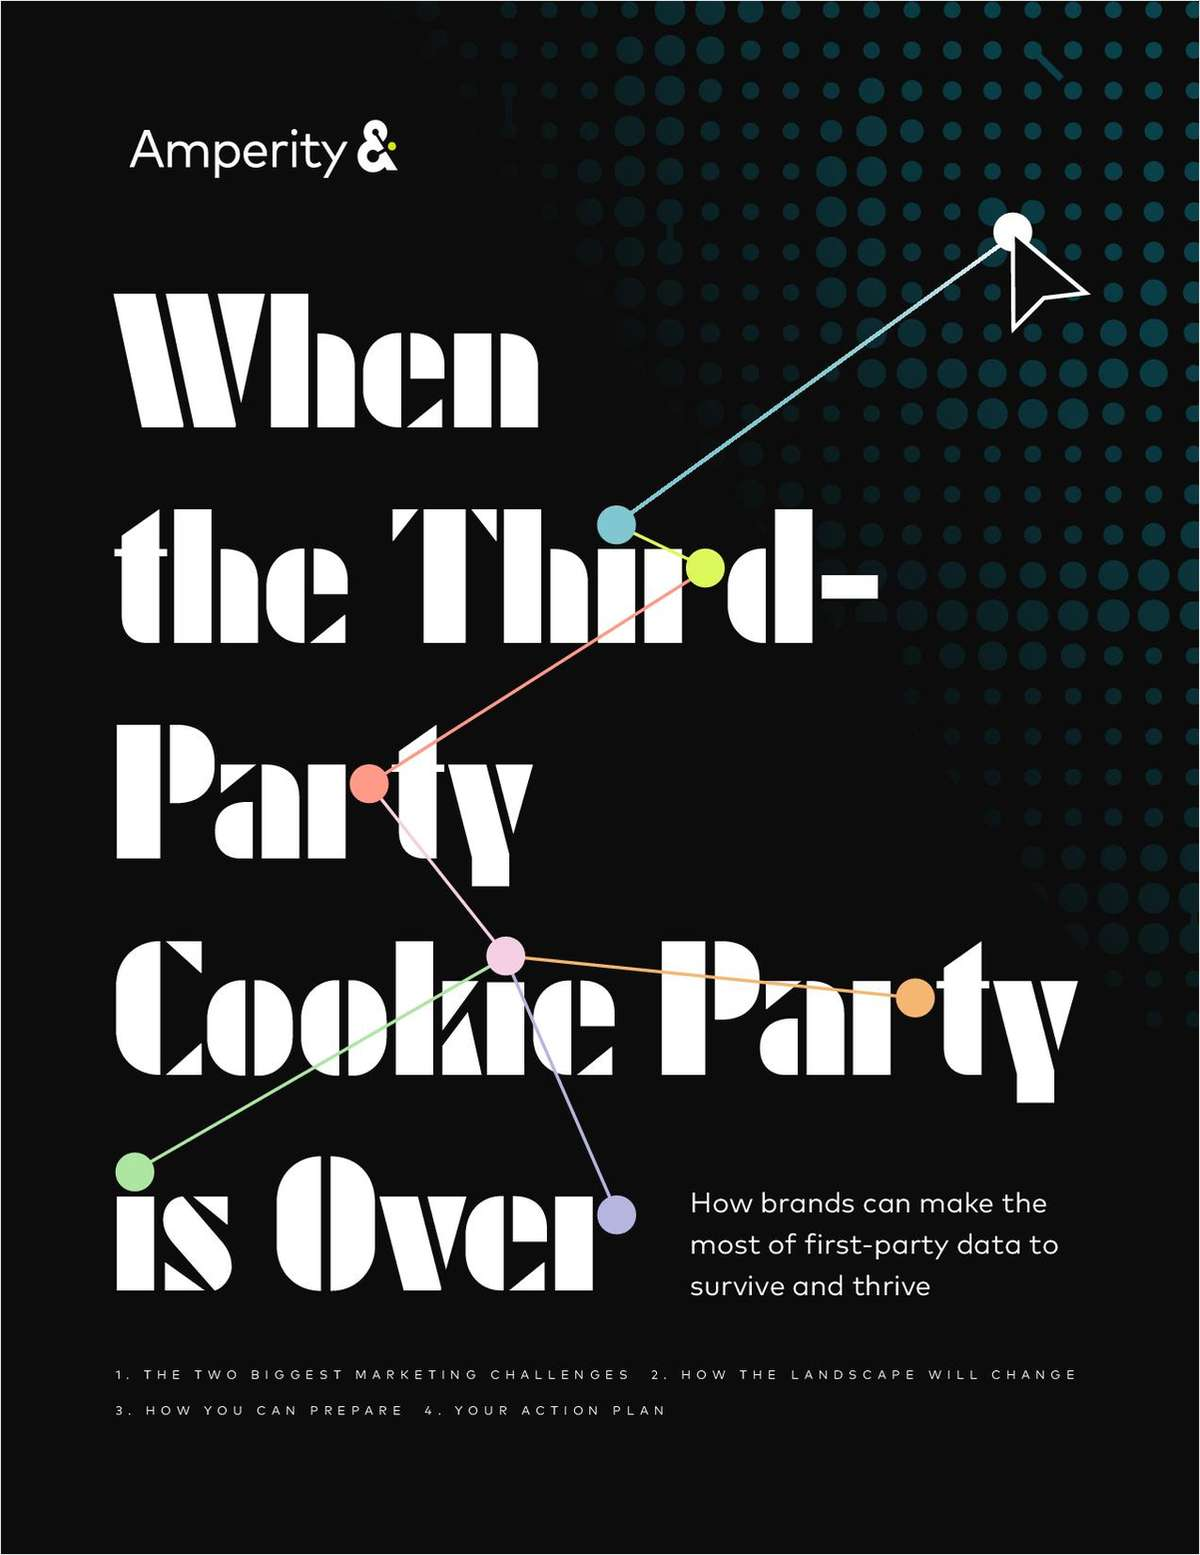 When the Third Party Cookie Party is Over Guide: How brands can make the most of first-party data to survive and thrive